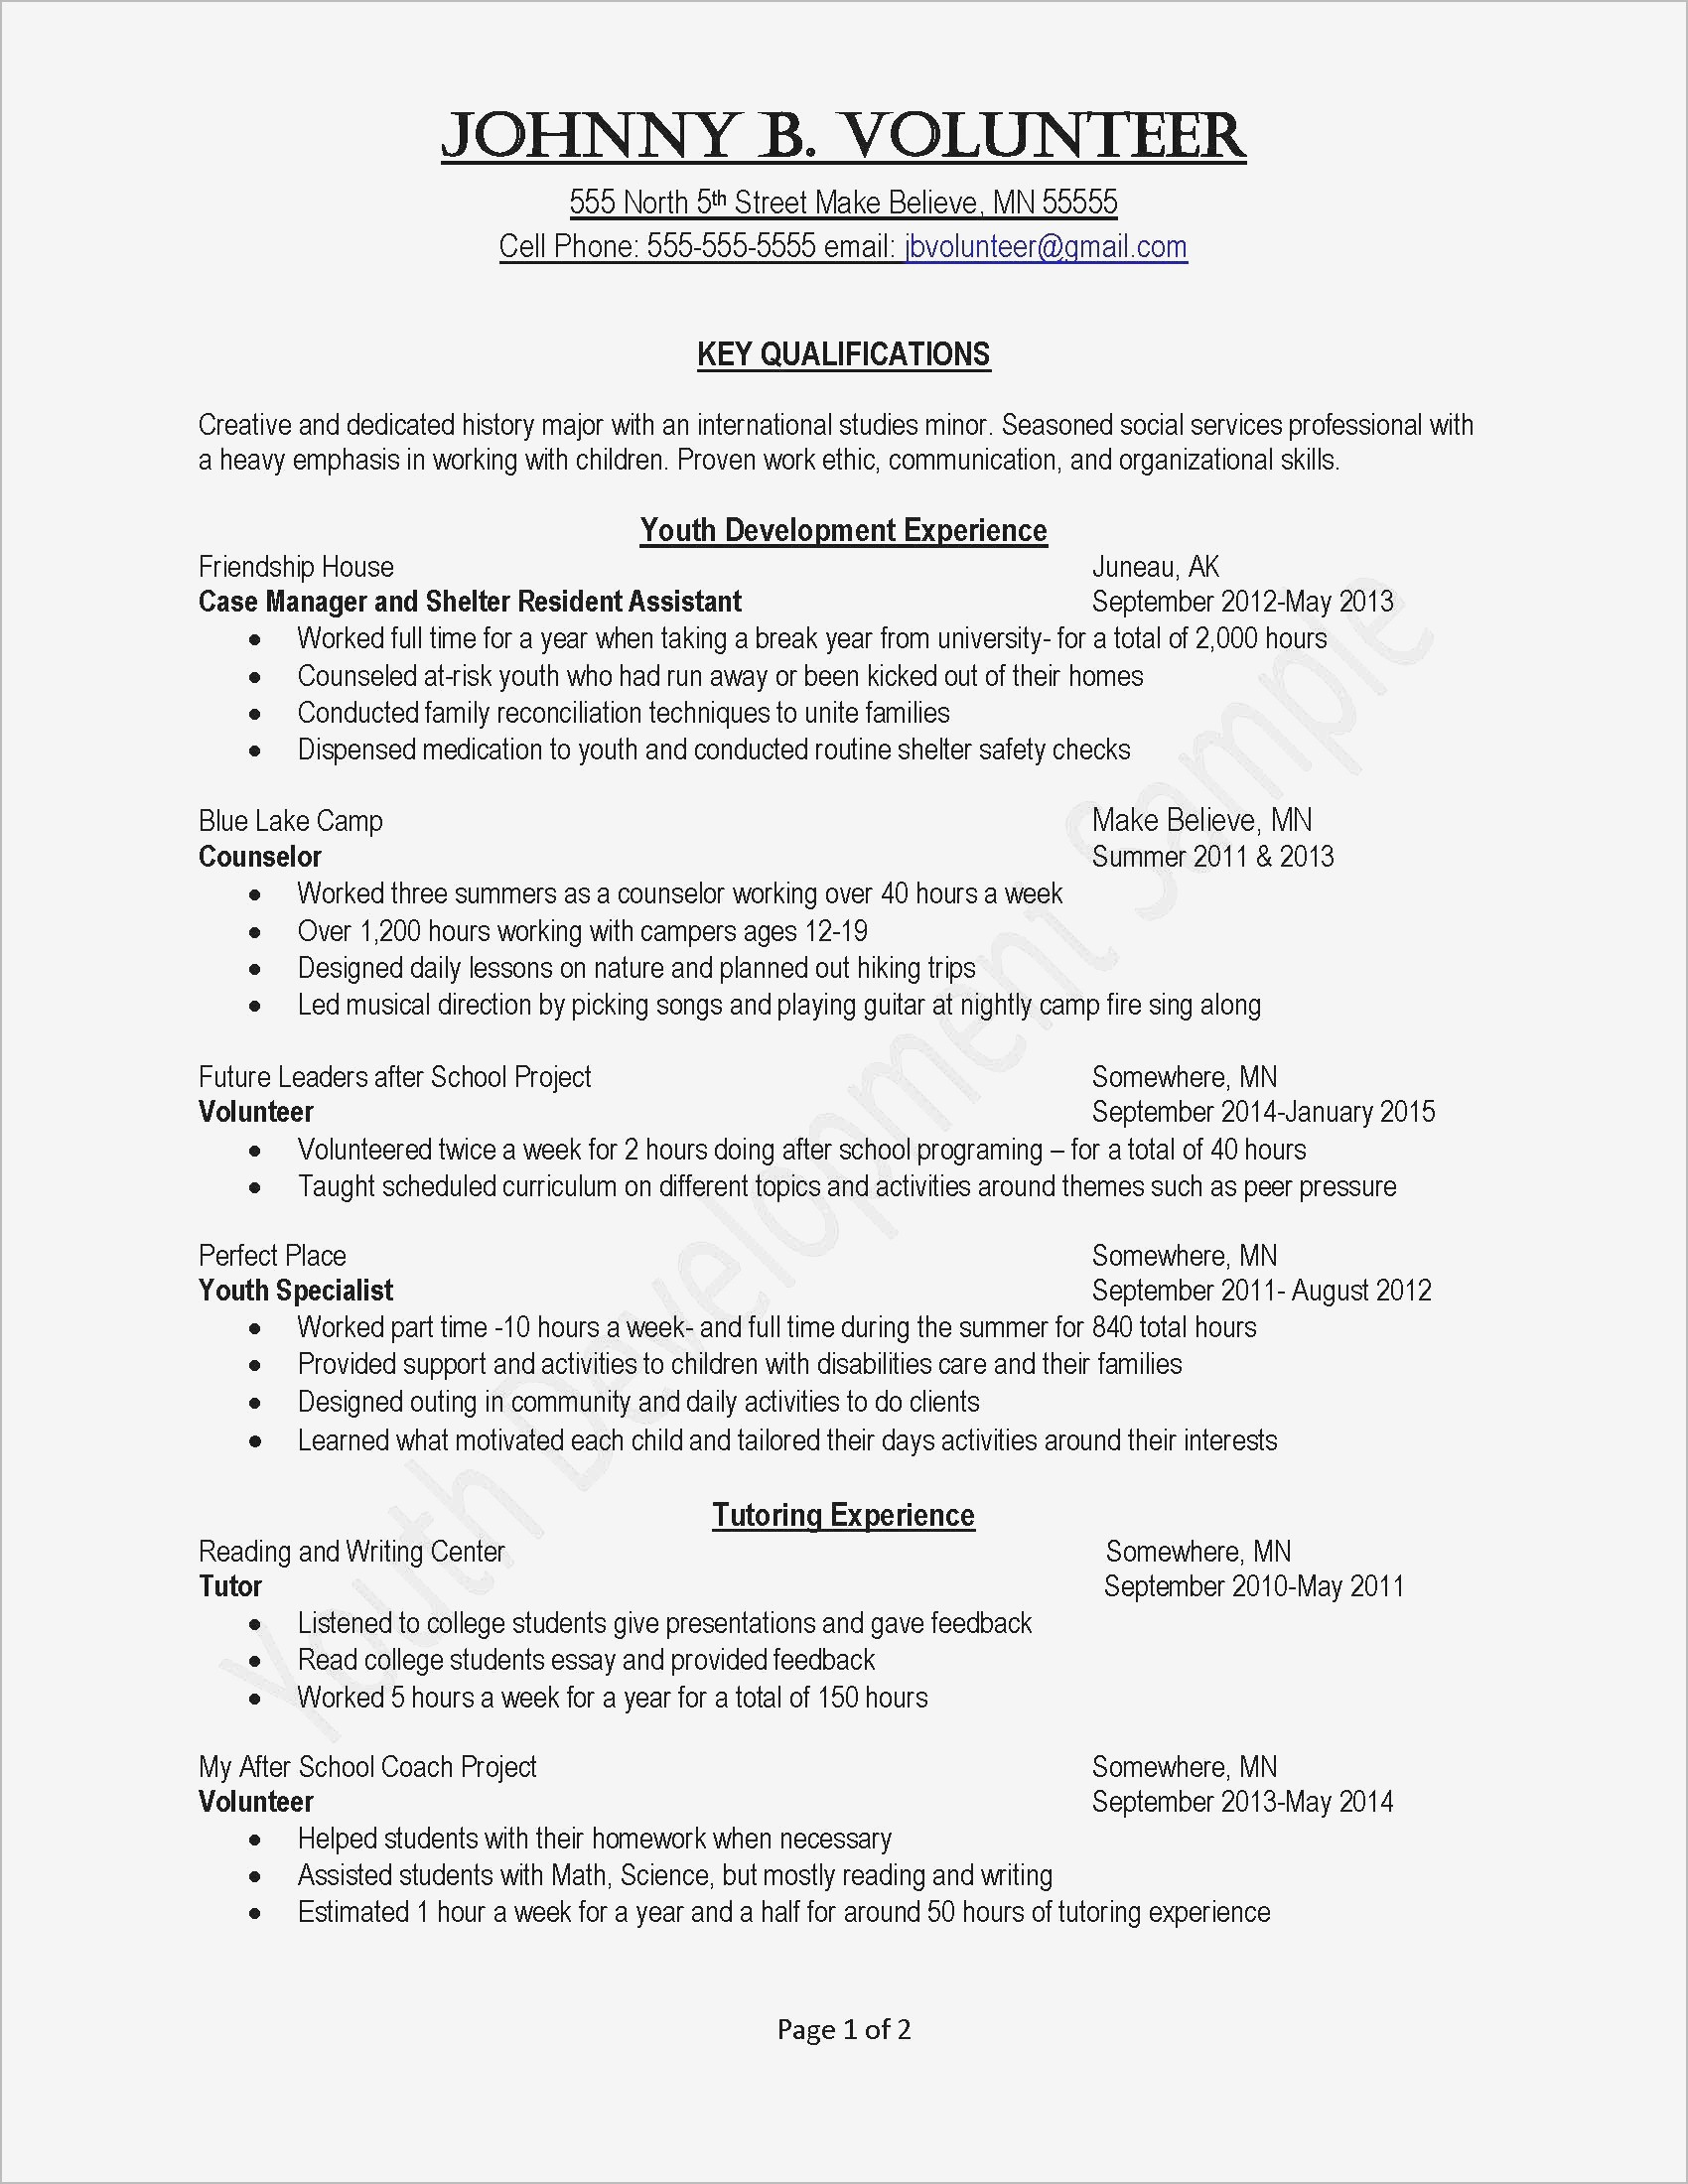 Quick Cover Letter Template - Cover Letter Examples for Resume Ideas